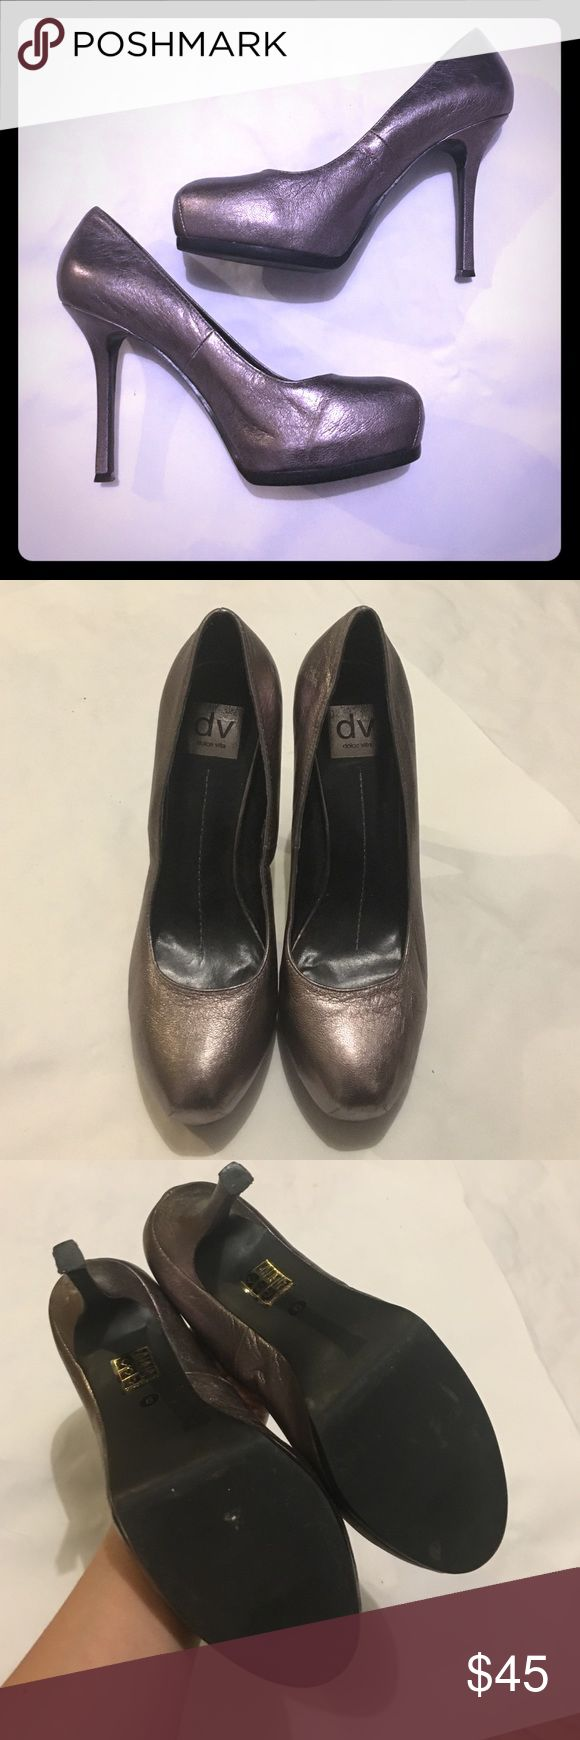 "dv Dolce Vita Metallic Pumps size 6 Gorg Metallic Pumps. Approx 4 3/4"" heel. Some sticky residue on inner heel from sticker. Some scuffs and markings from wear. Wear to bottoms / heel but in good used condition. DV by Dolce Vita Shoes Heels"